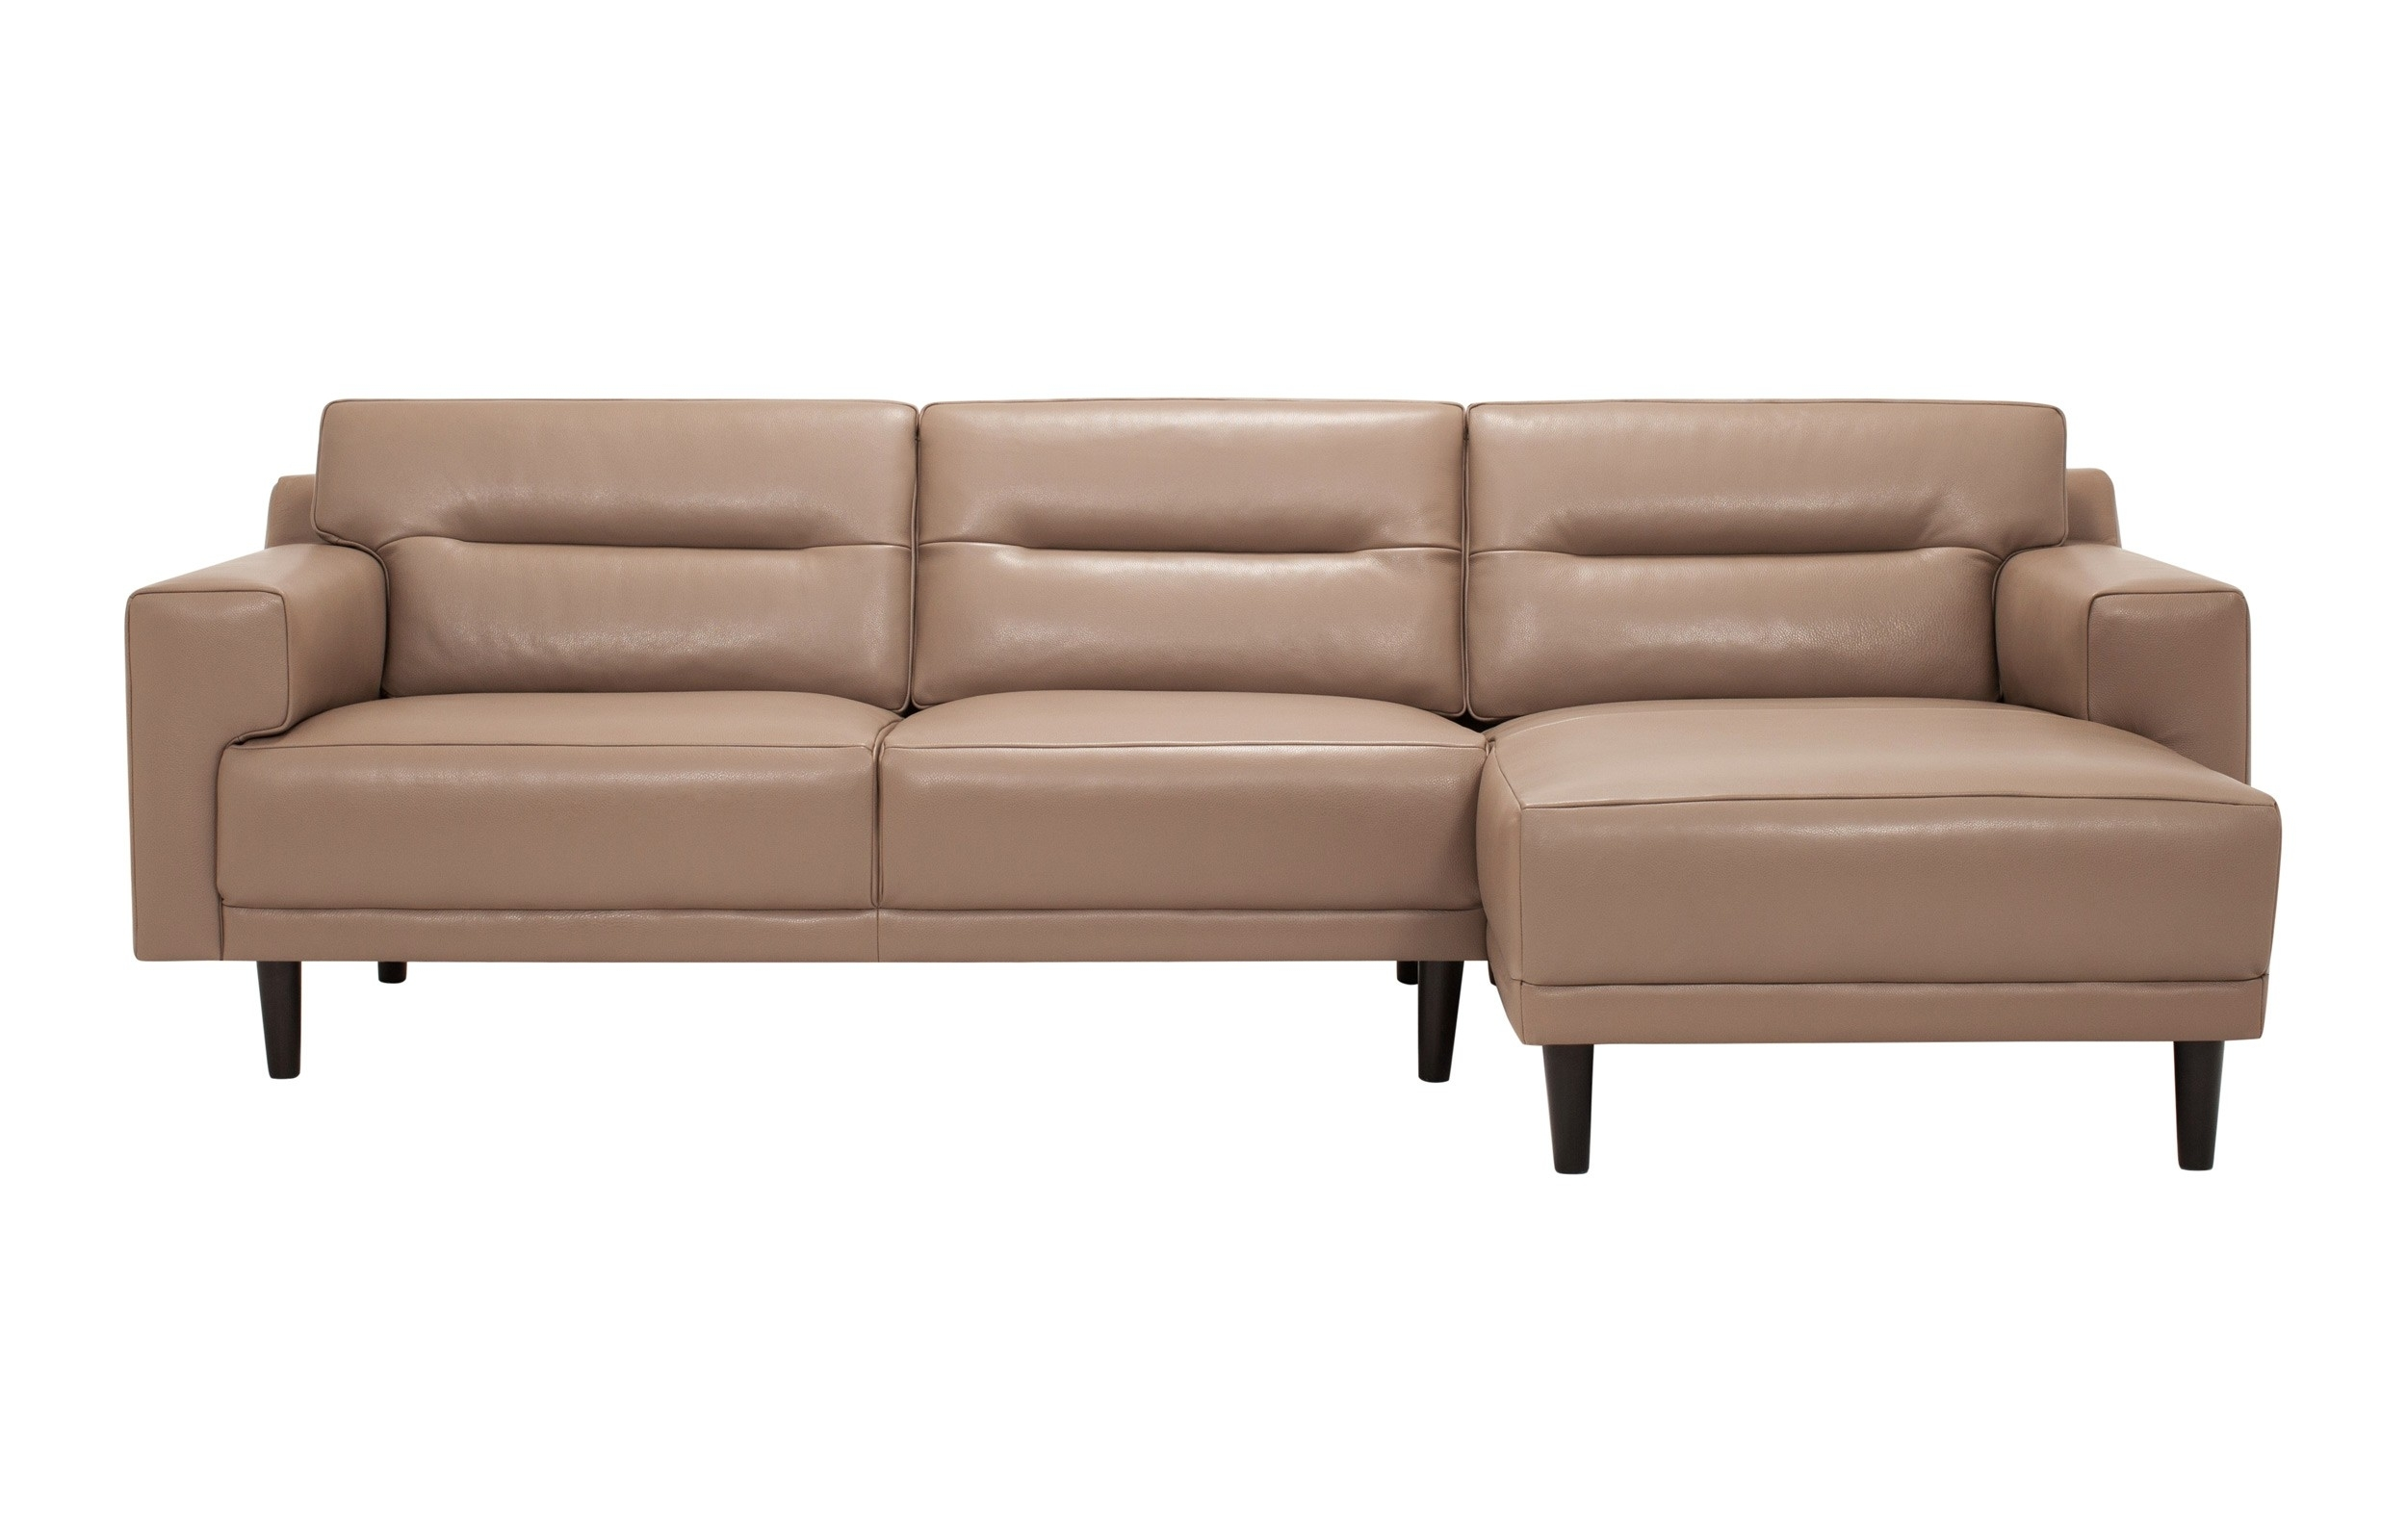 Collection Of Solutions Sectional Sofa With 2 Chaises On Aspen 2 Intended For Aspen 2 Piece Sectionals With Laf Chaise (View 24 of 25)